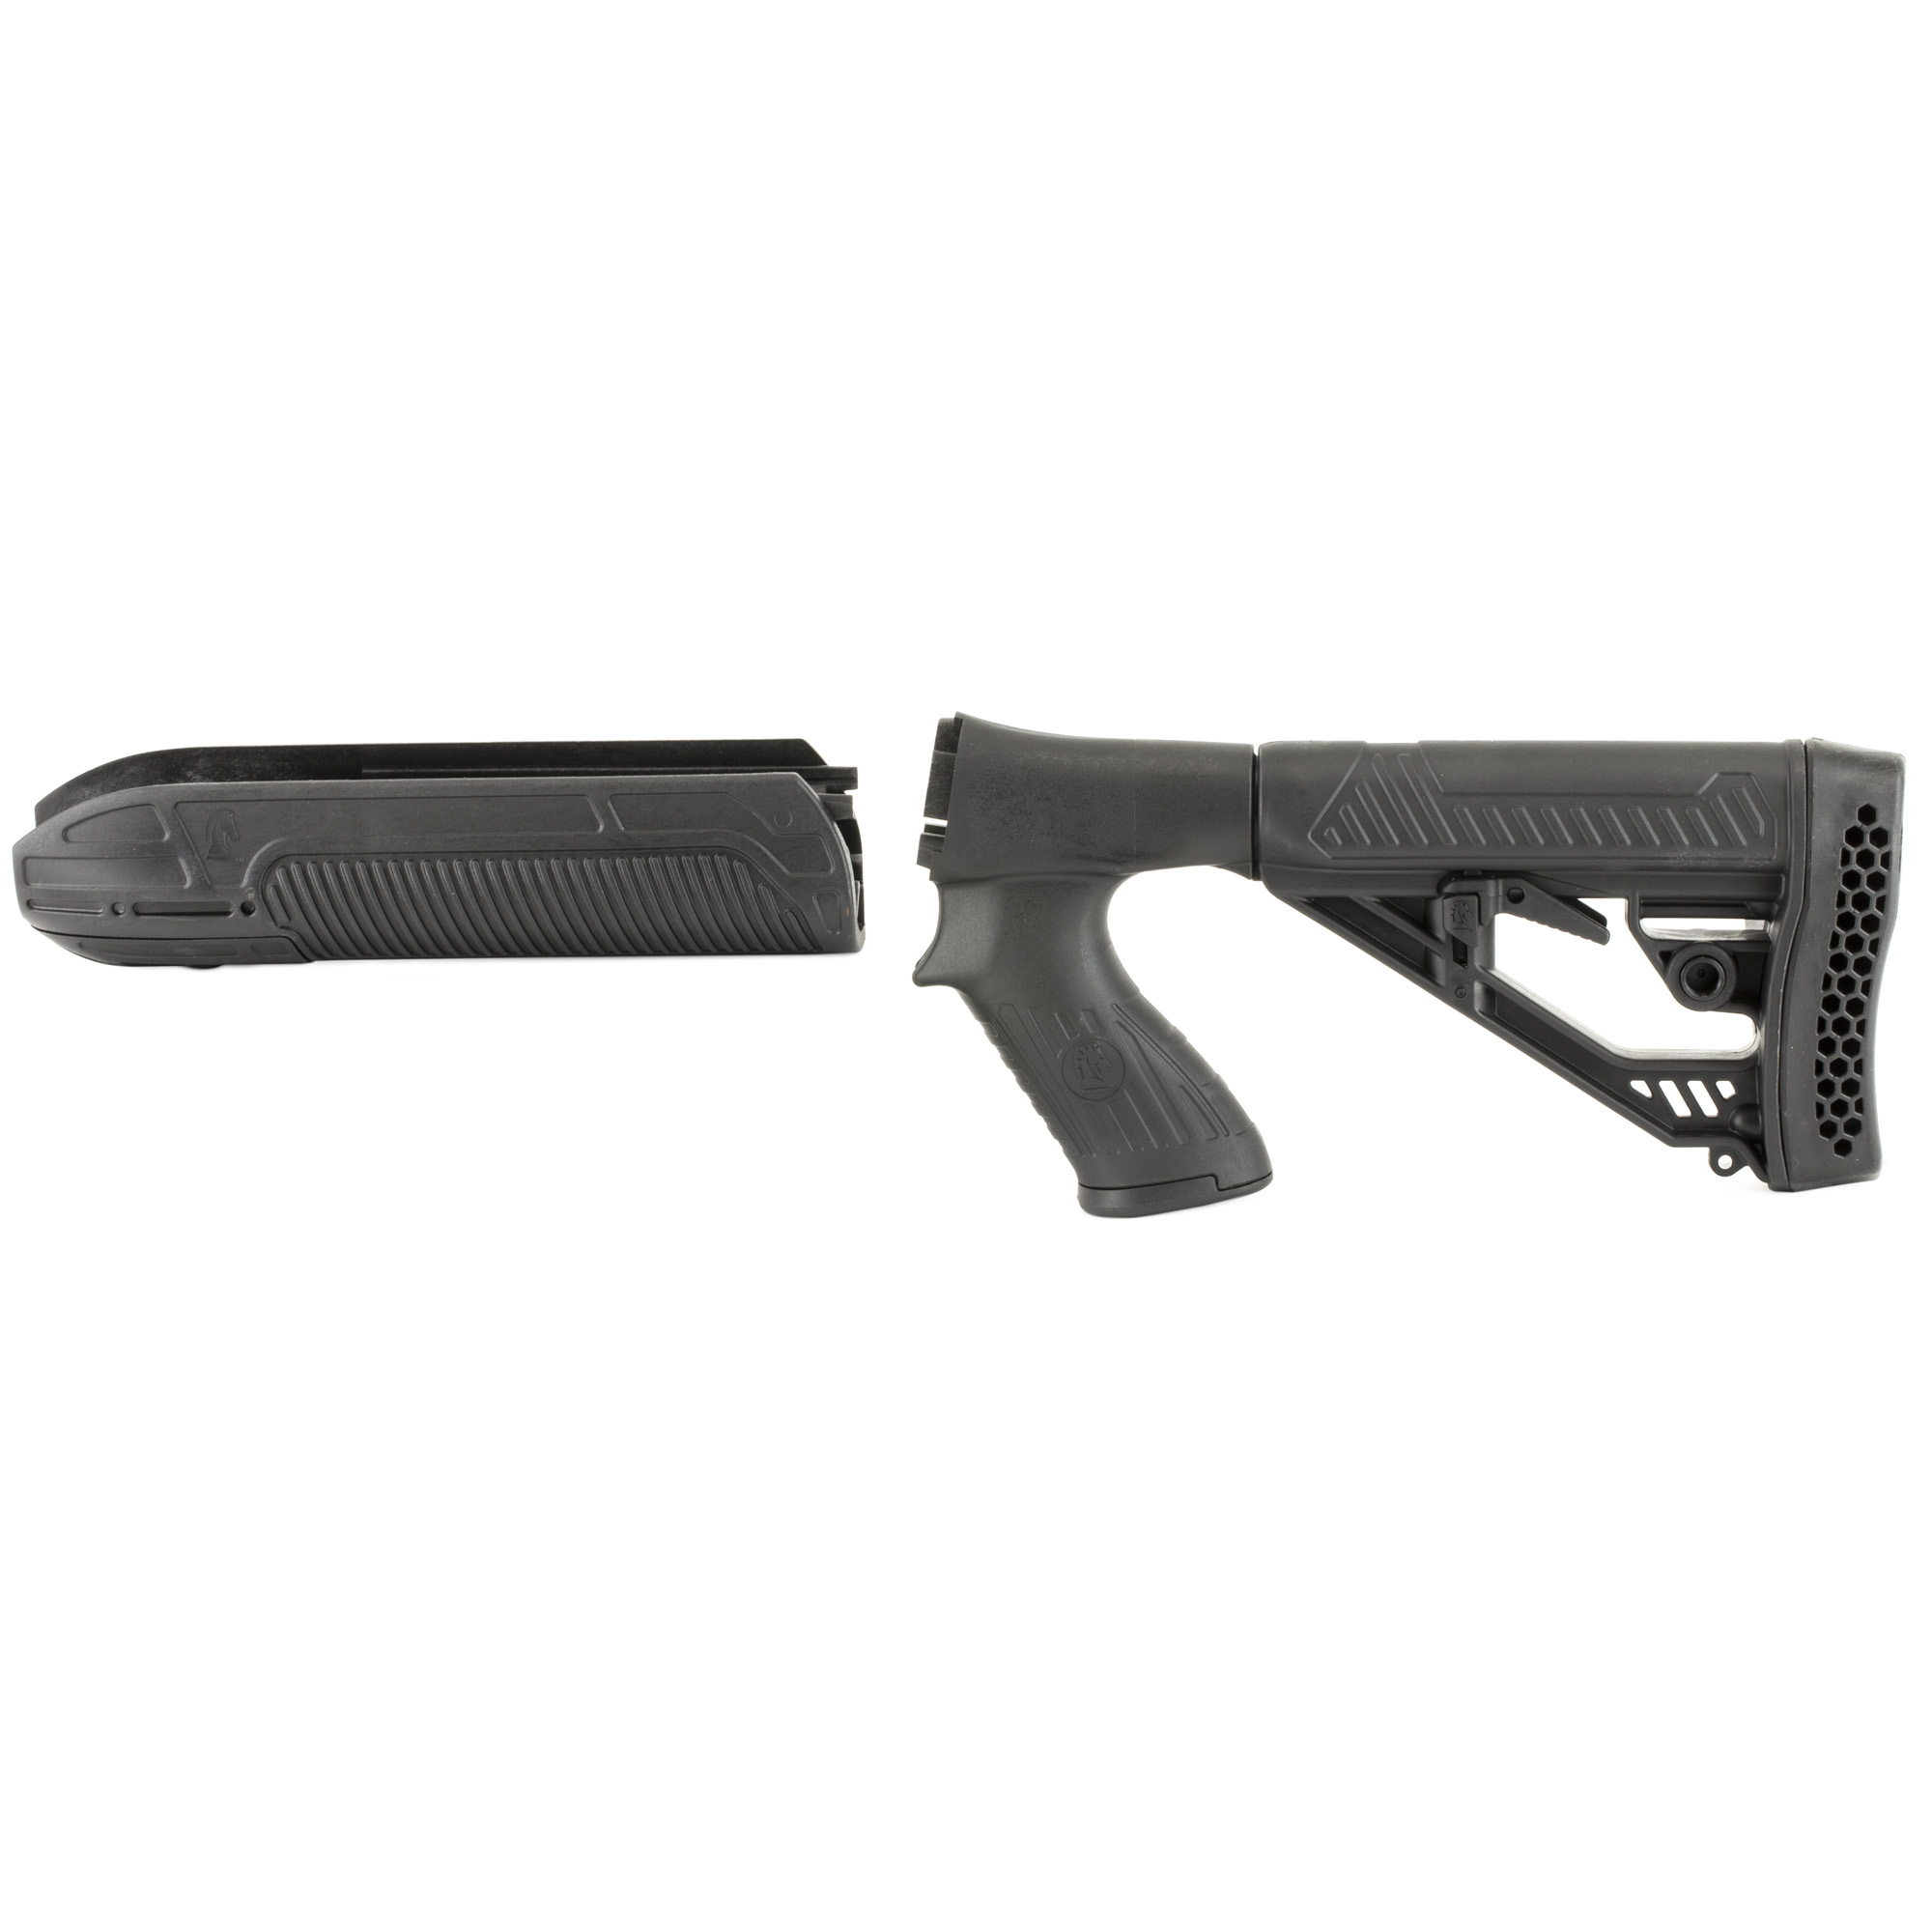 "The Adaptive Tactical Forend and M4-Style Stock for Remington Shotguns is optimized for pump shotguns. The advanced design features and high-impact"" polymer construction of the EX Performance Adjustable Stock and Forend make it an ideal choice when upgrading your Remington 870 12g pump shotgun. The EX Performance Forend features a 2 inch picatinny rail concealed under the nose cap. Uncovered it's ideal for attaching tactical accessories like lasers or lights.The EX Performance M4-style Stock with pistol grip features an easy-to-reach rapid adjust lever for custom length-of-pull"" and includes an integrated QD swivel attachment and molded in non-rust standard sling swivel attachment. Durable polymer construction with non-slip vented rubber recoil pad"" oversized extra strength adjustment pin"" and sleek industrial design."